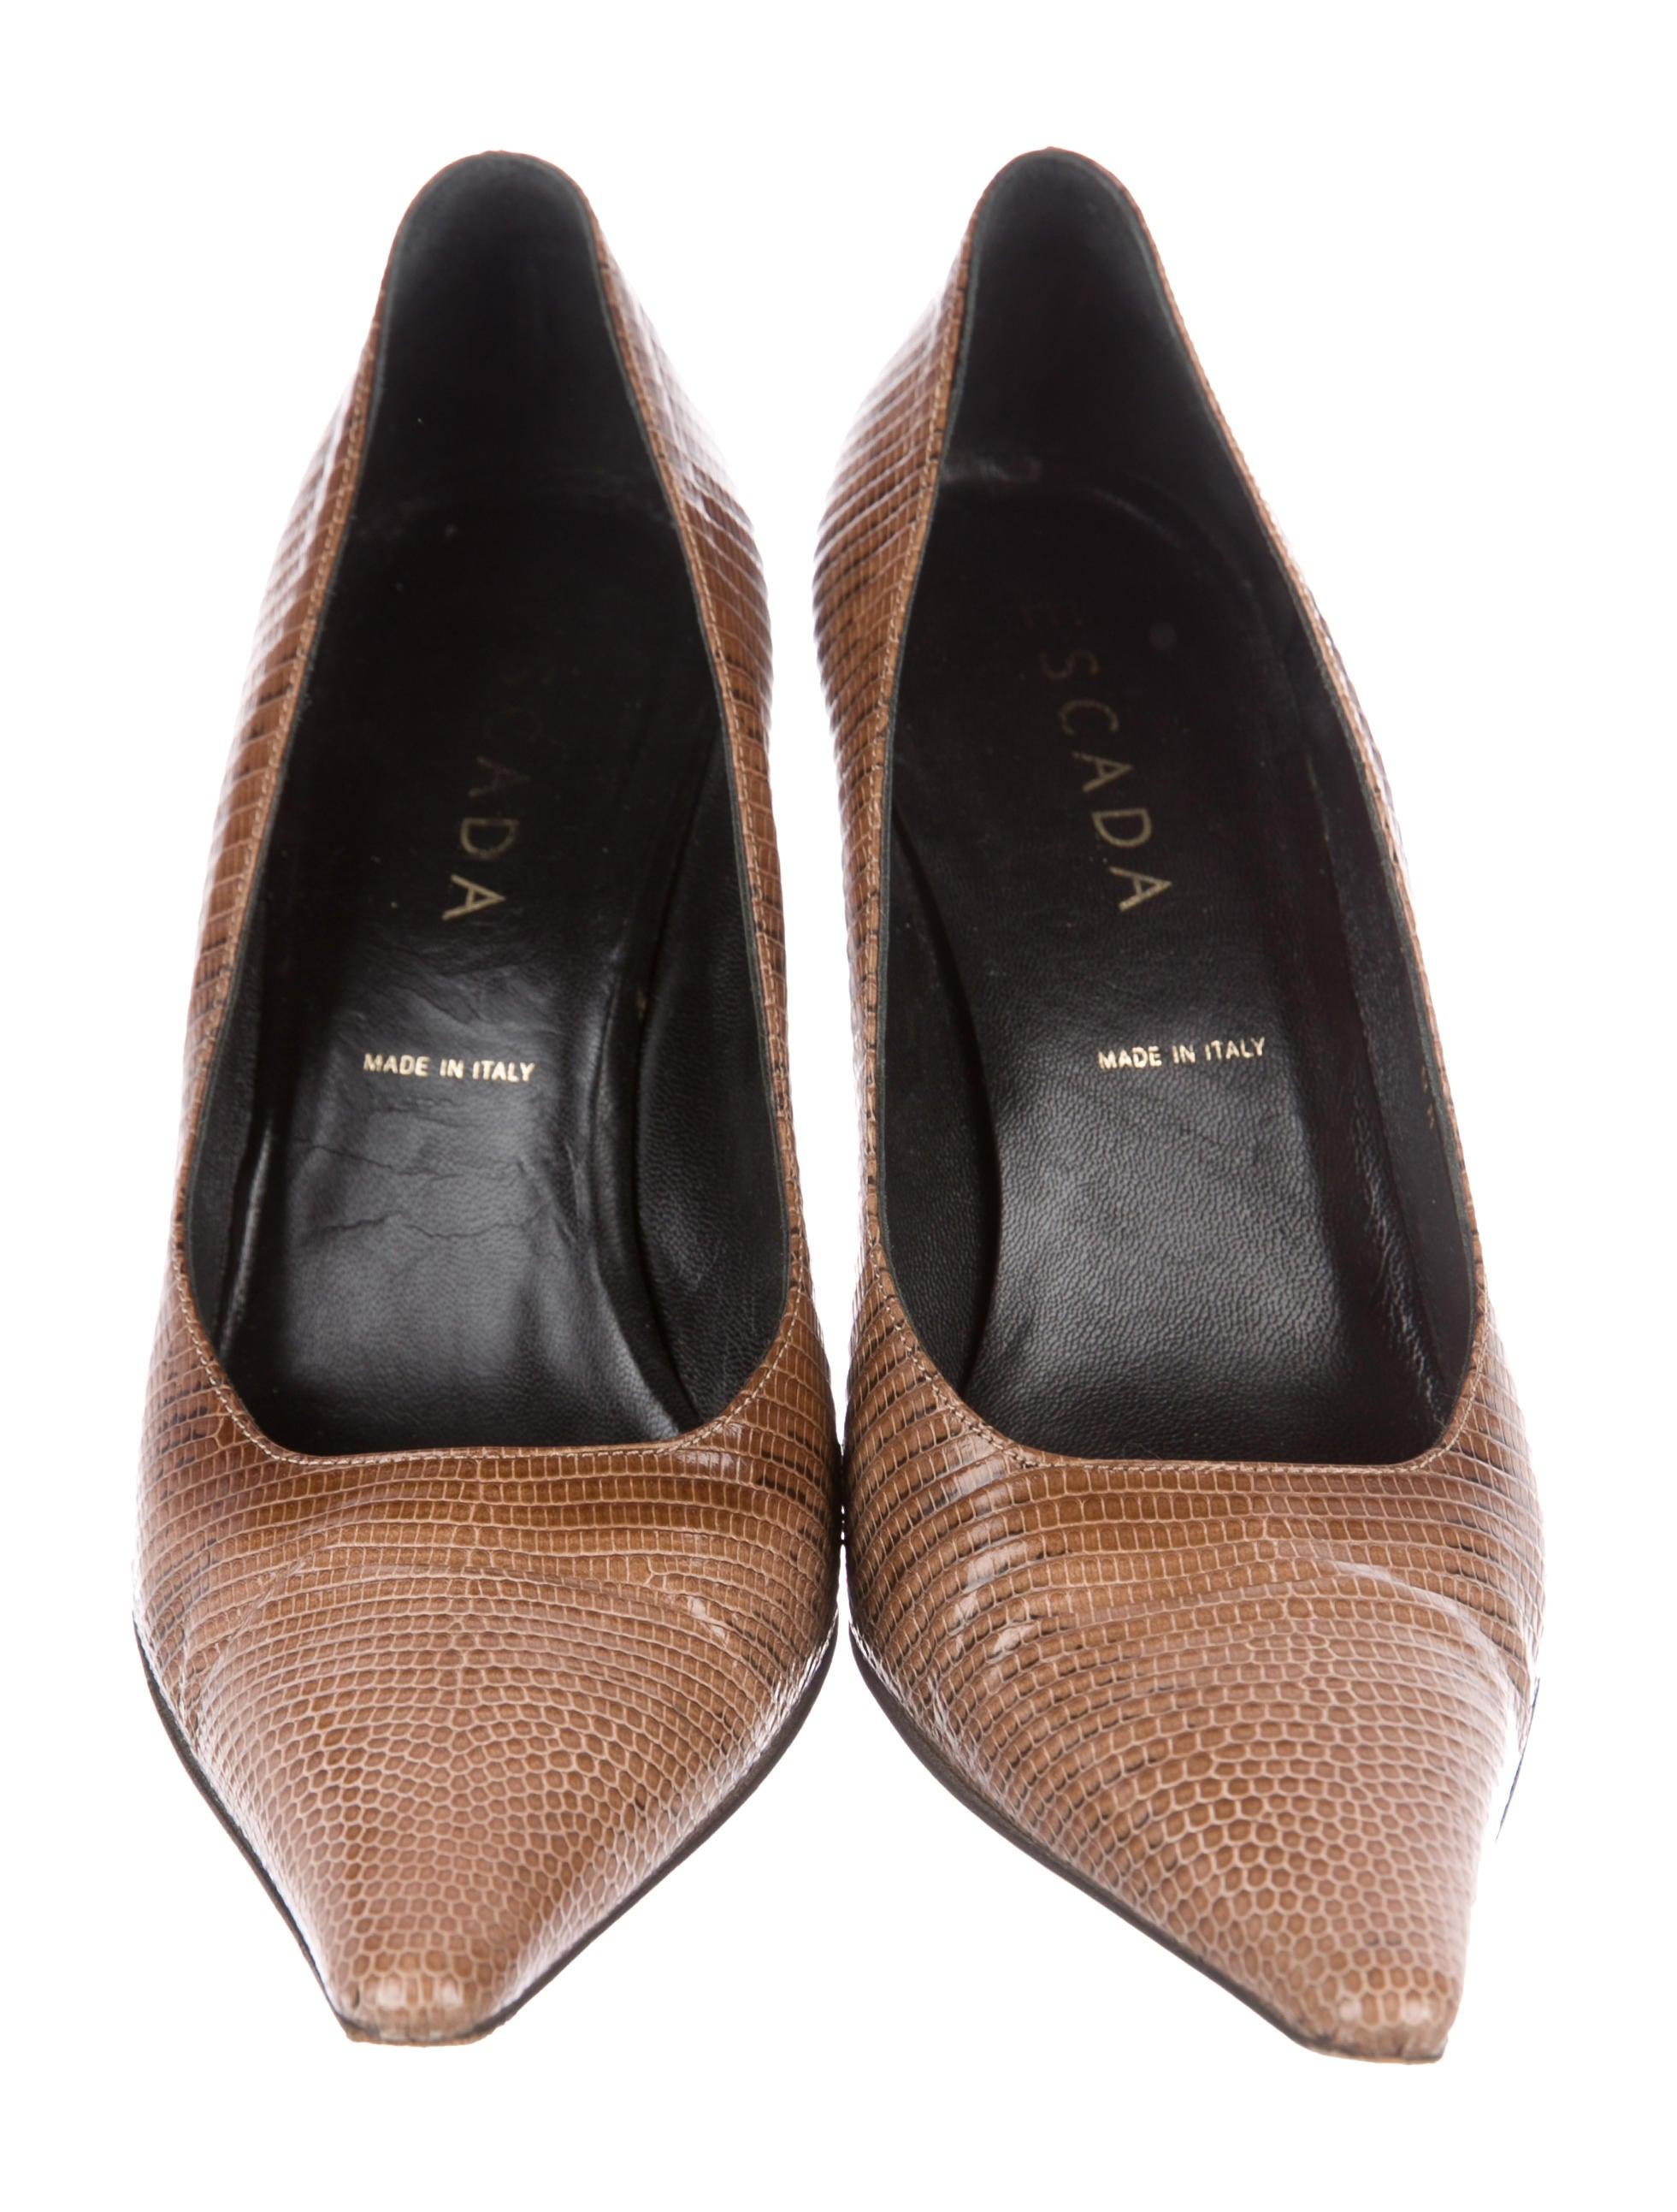 Escada Embossed Square-Toe Pumps cheap low shipping buy cheap get to buy buy cheap sast clearance 100% guaranteed buy cheap store jDJebgT3Z